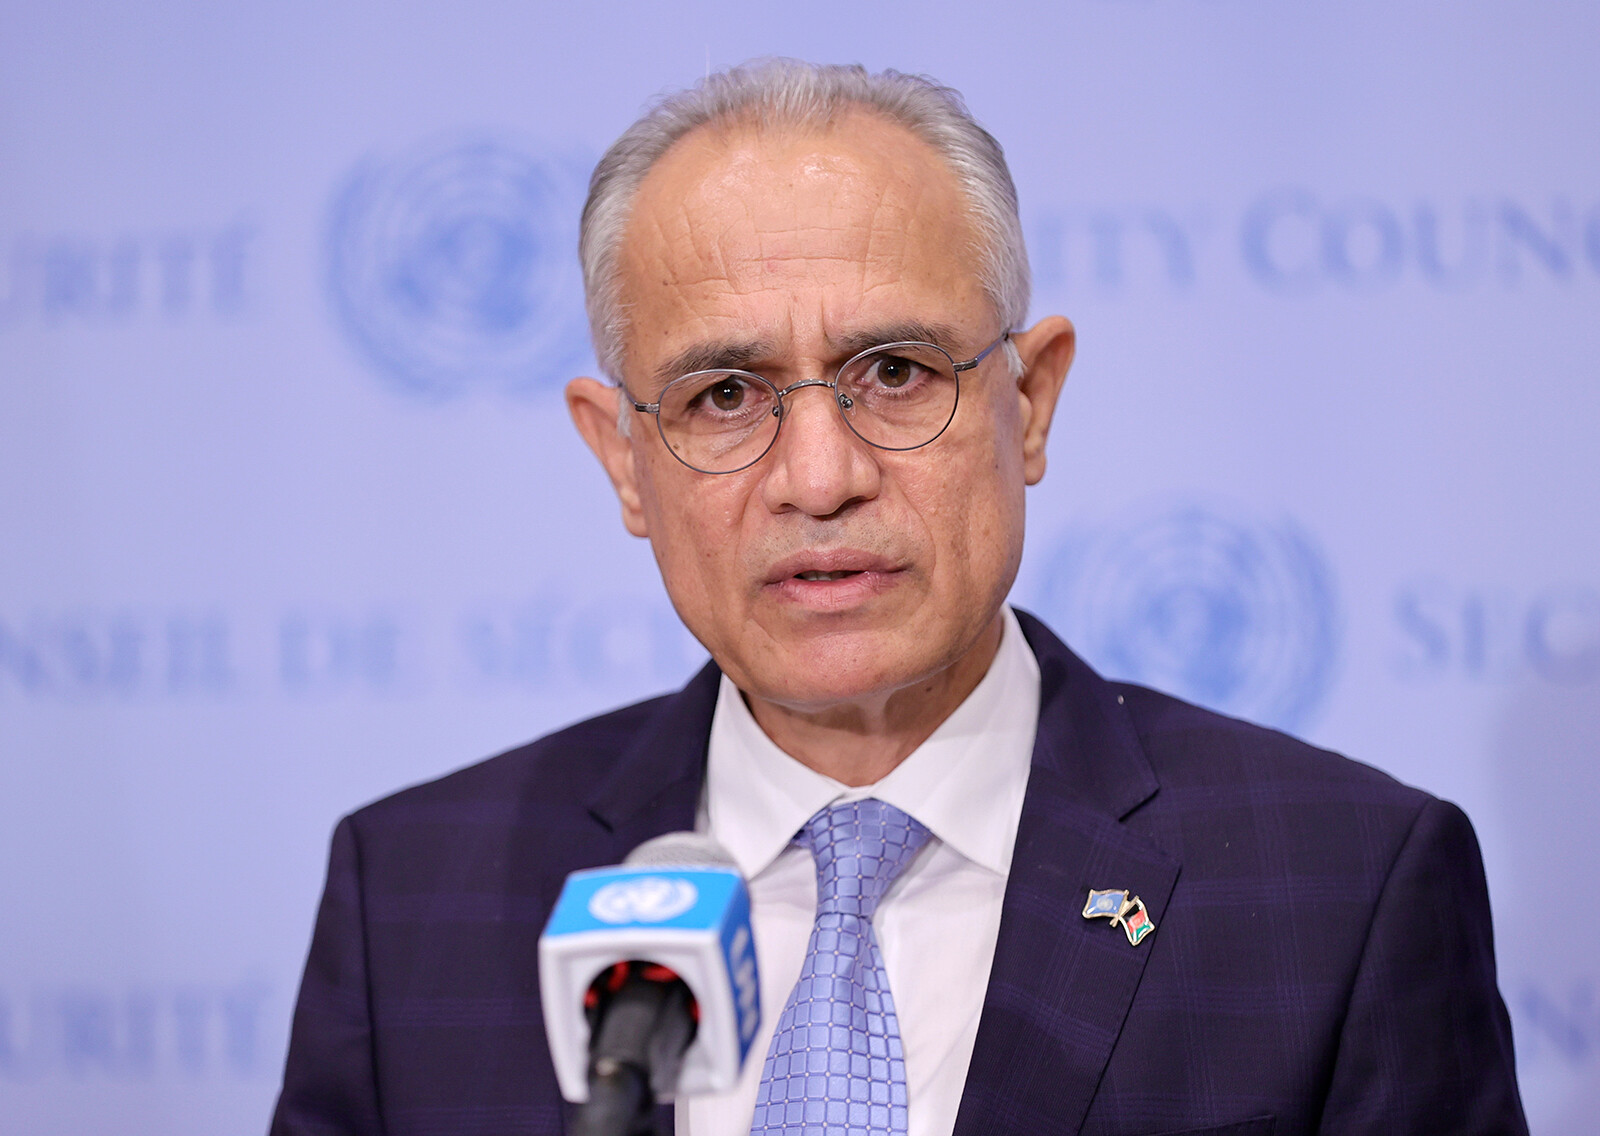 Afghanistan and Myanmar withdraw from UN speaker list amid credentials dispute